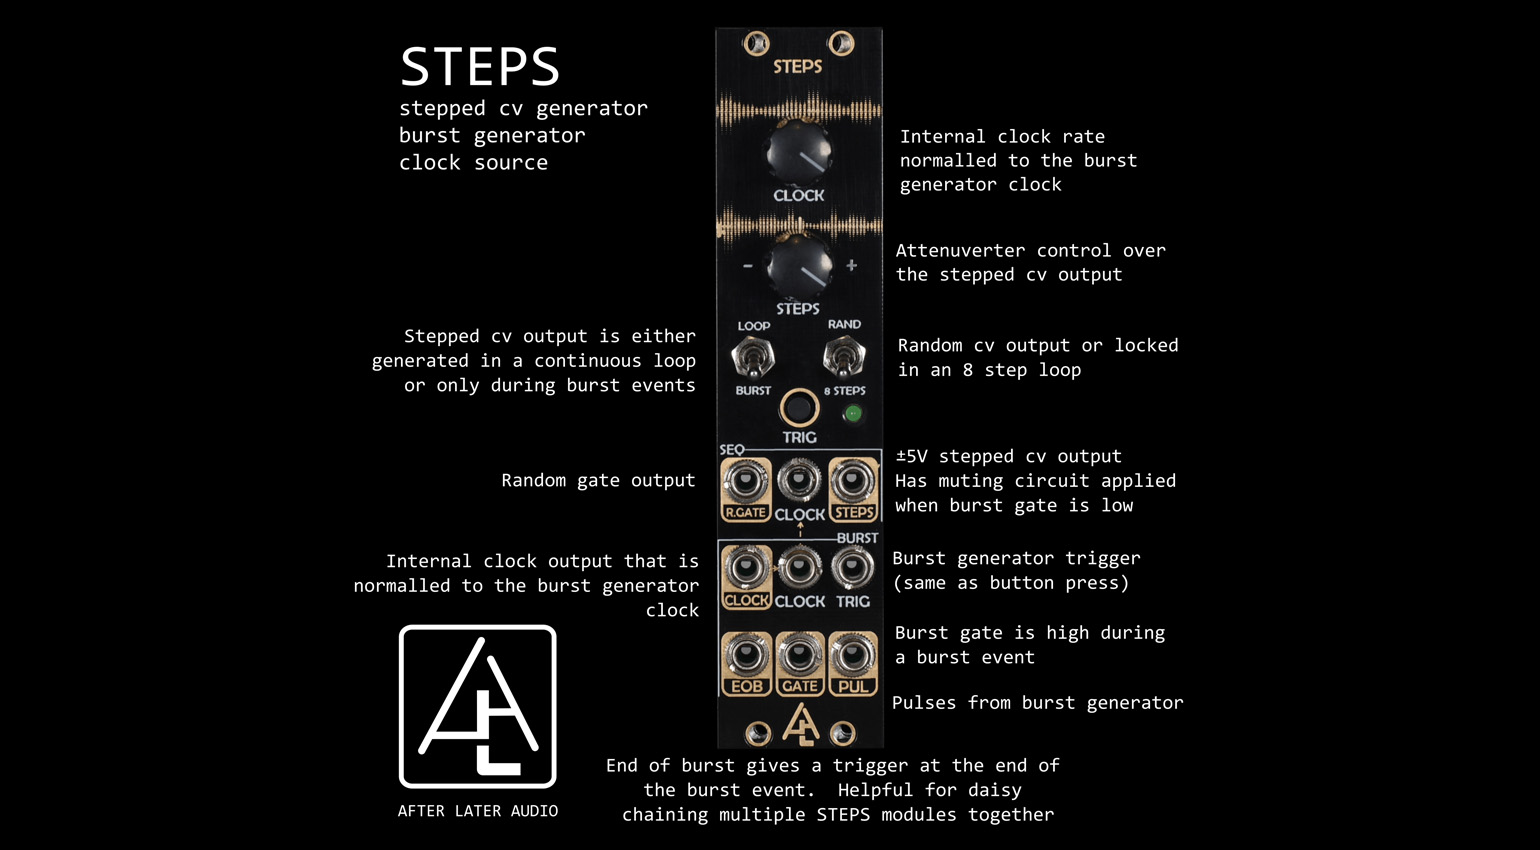 After Later Audio STEPS